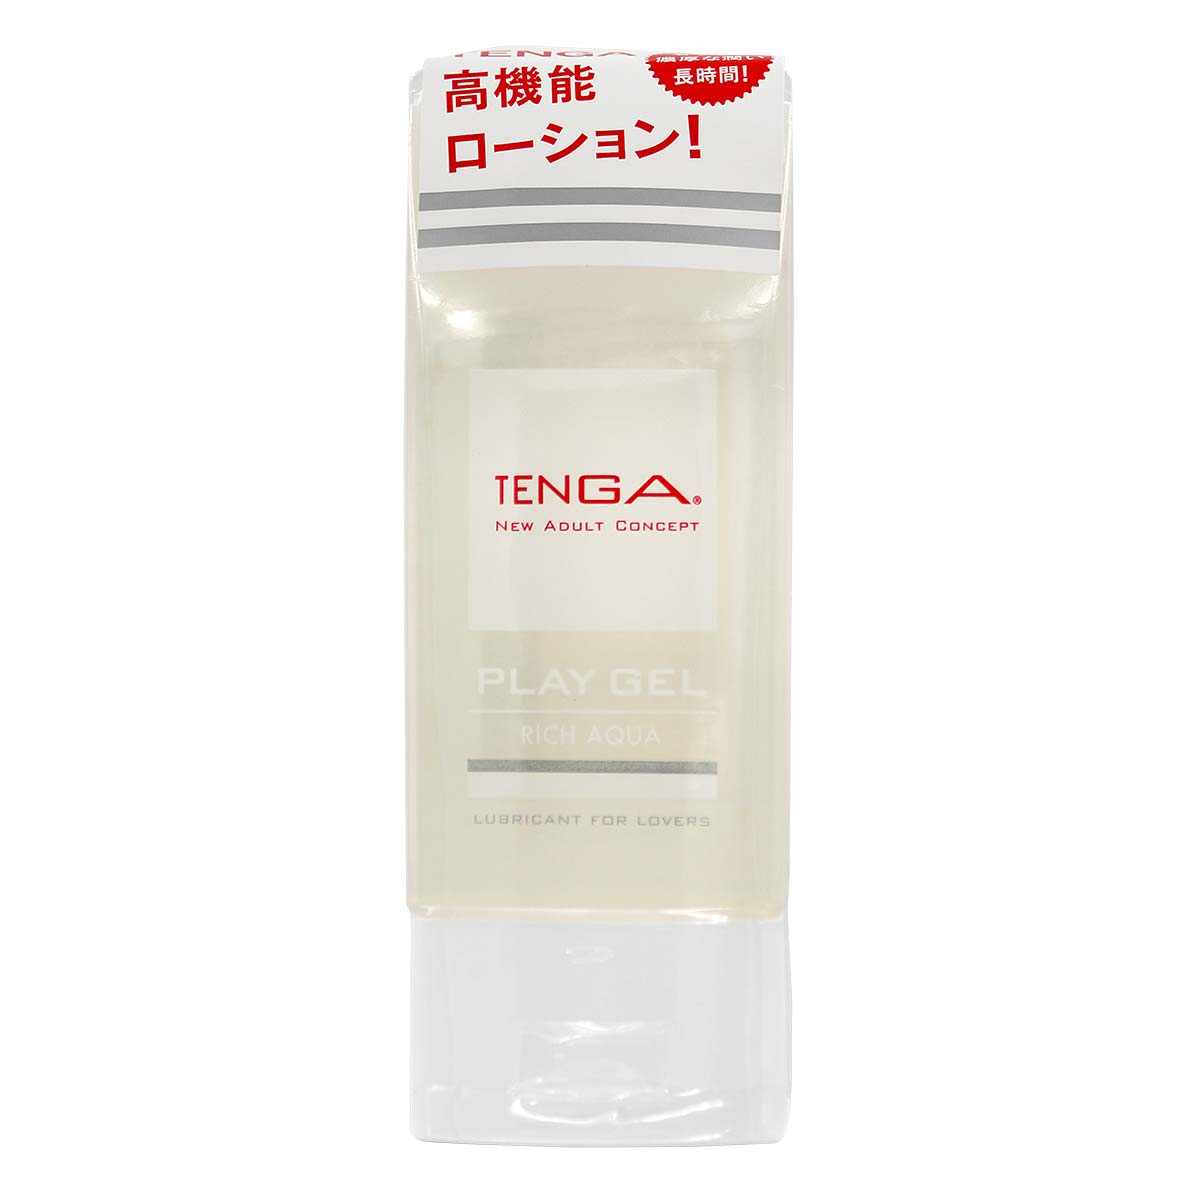 TENGA Play Gel Rich Aqua Water-based Lubricant